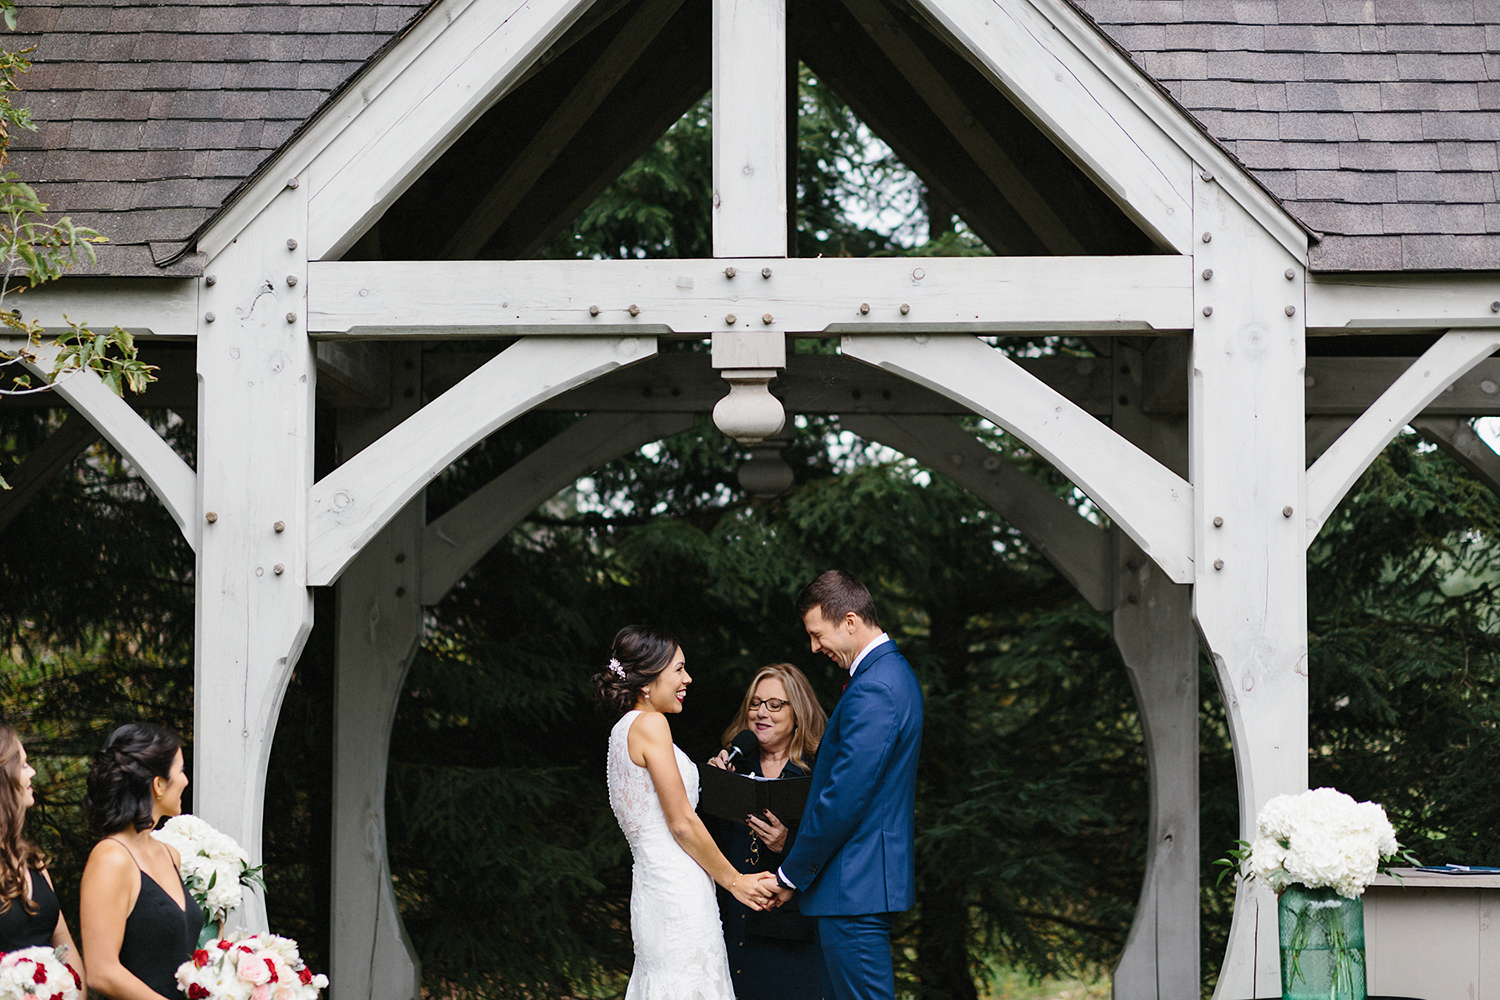 Backyard-family-intimate-cottage-wedding-chatum-kent-toronto-ontario-film-photographer-ryanne-hollies-photography-diy-string-lights-and-lanterns-reception-dinner-documentary-wooden-harvest-tables-diy-decor-pink-flowers.jpg